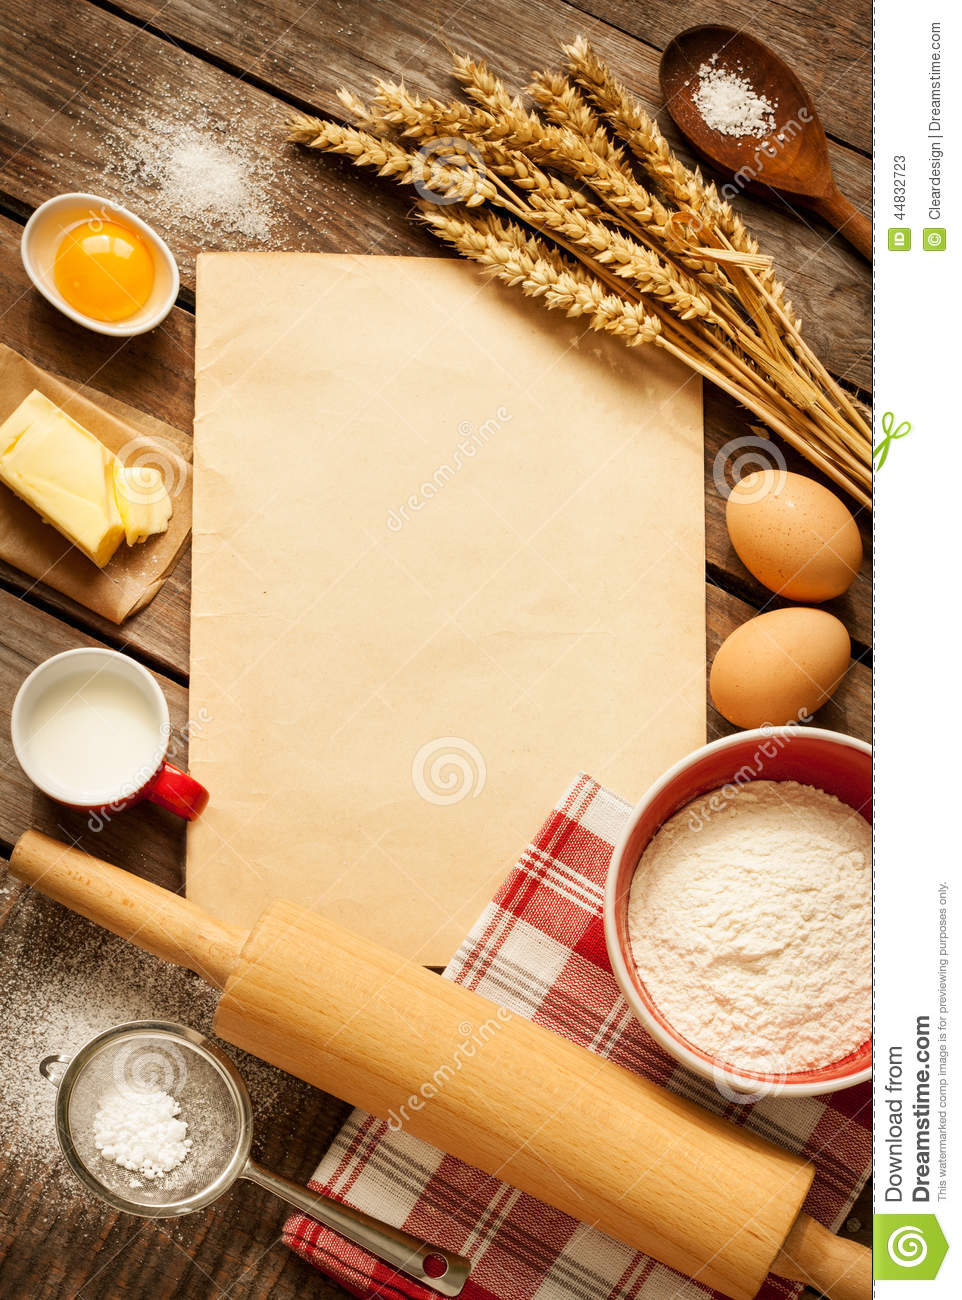 Bakery Wallpaper Hd Rural Kitchen Baking Cake Ingredients And Blank Paper